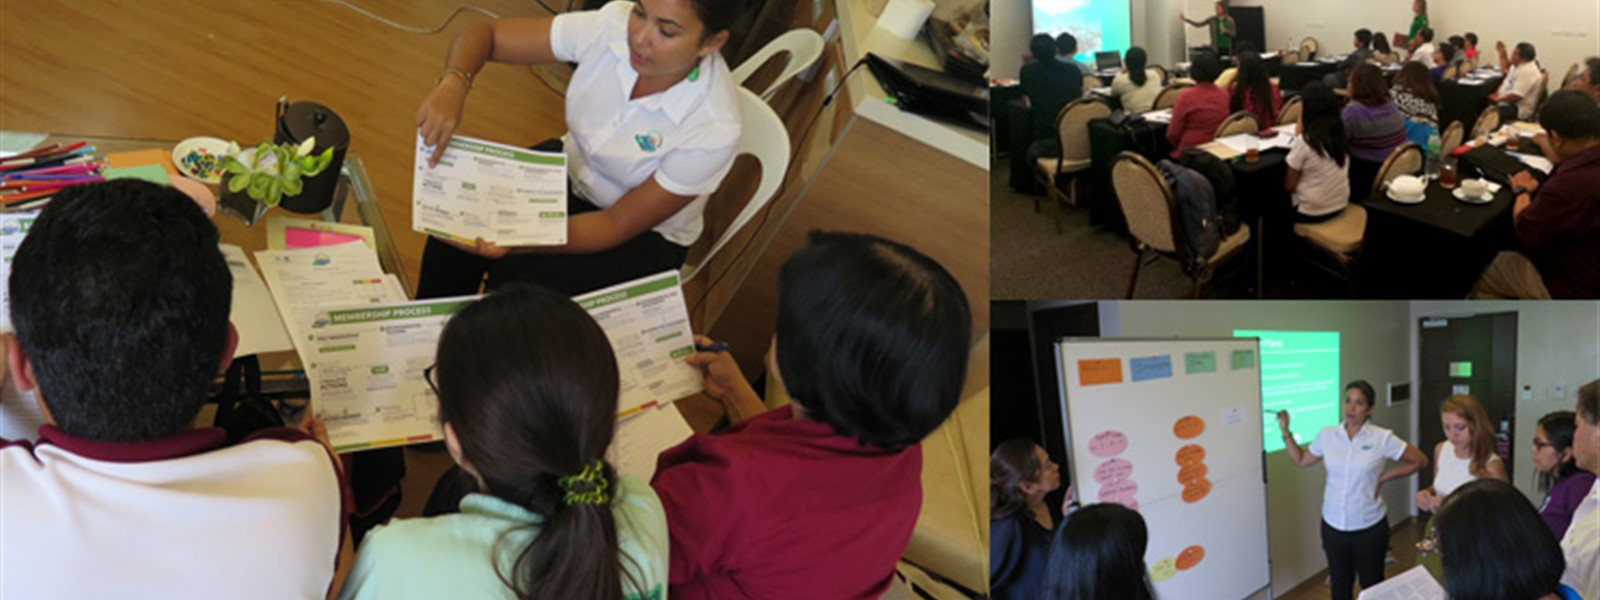 Pictures of Sam from Reef-World leading training for DENR coordinators.